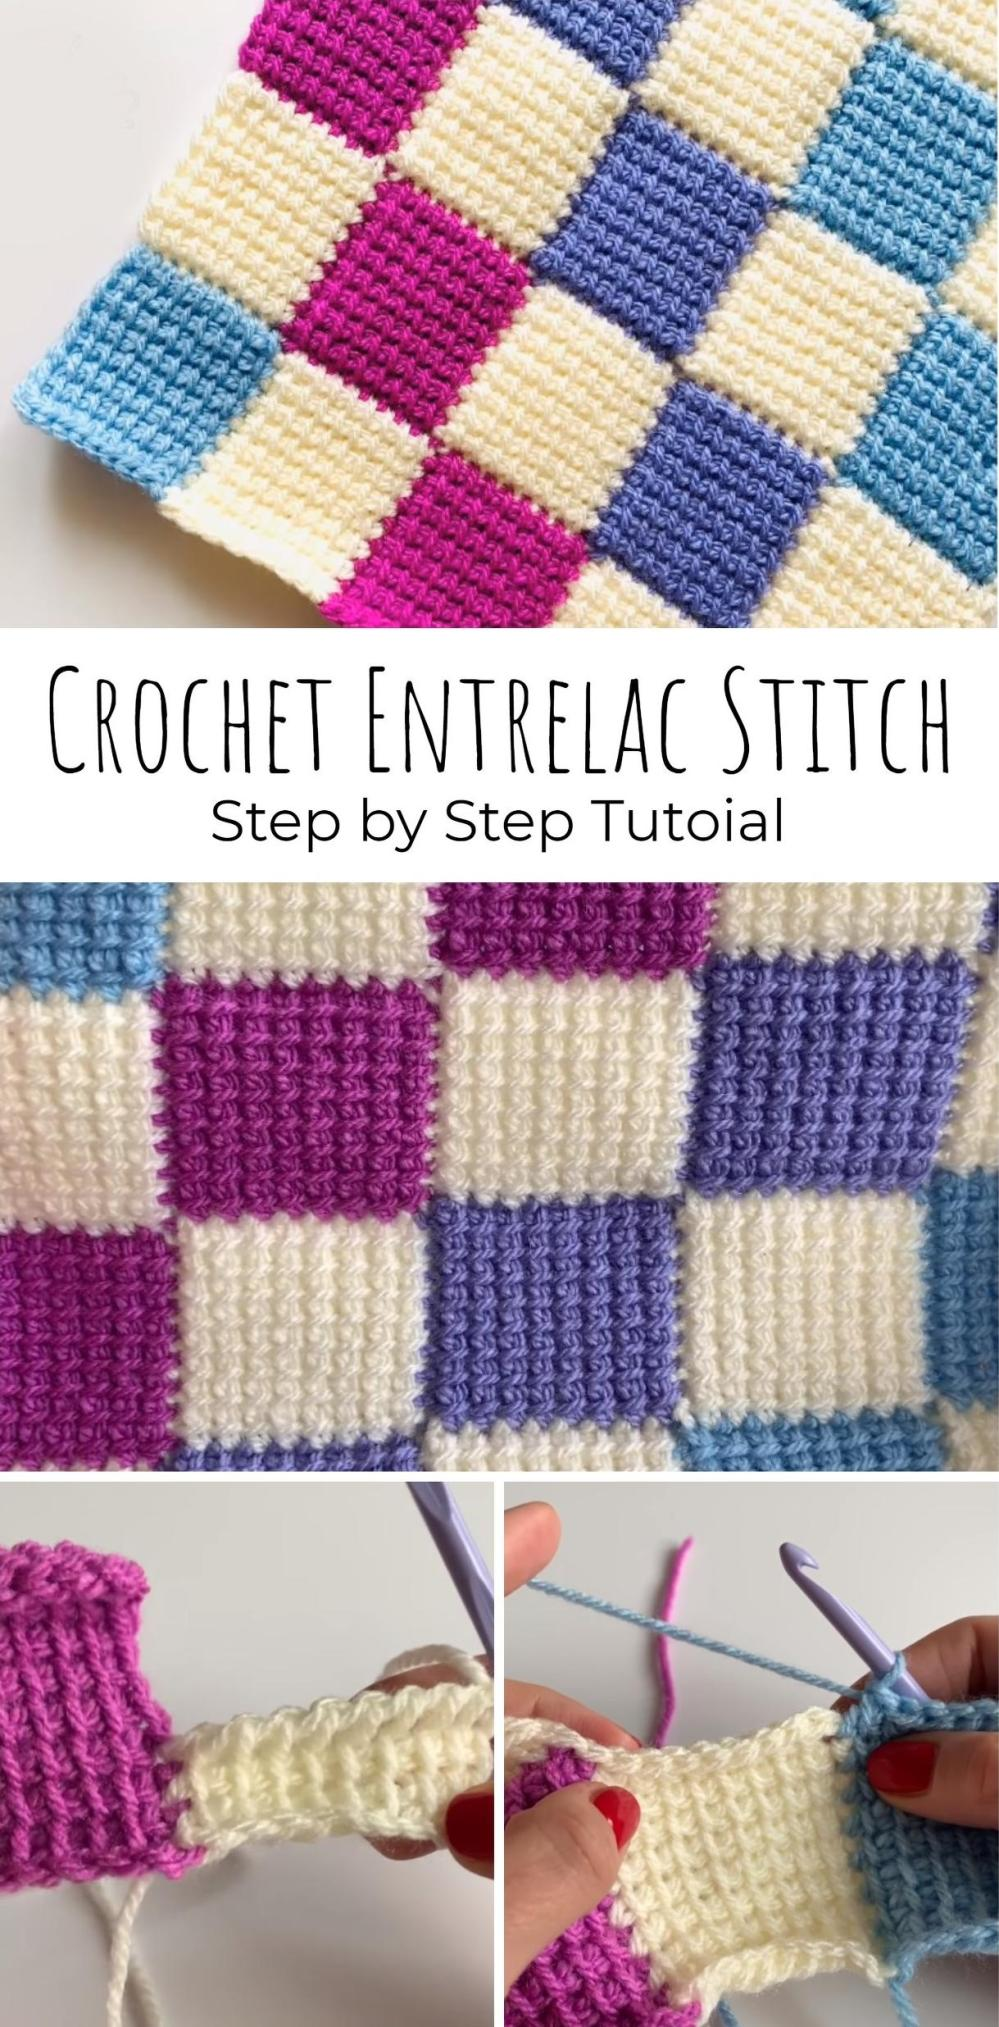 medium resolution of  in crochet you can find many other video lessons where you can learn different stitches and skills so get more satisfaction from your lovely handcraft